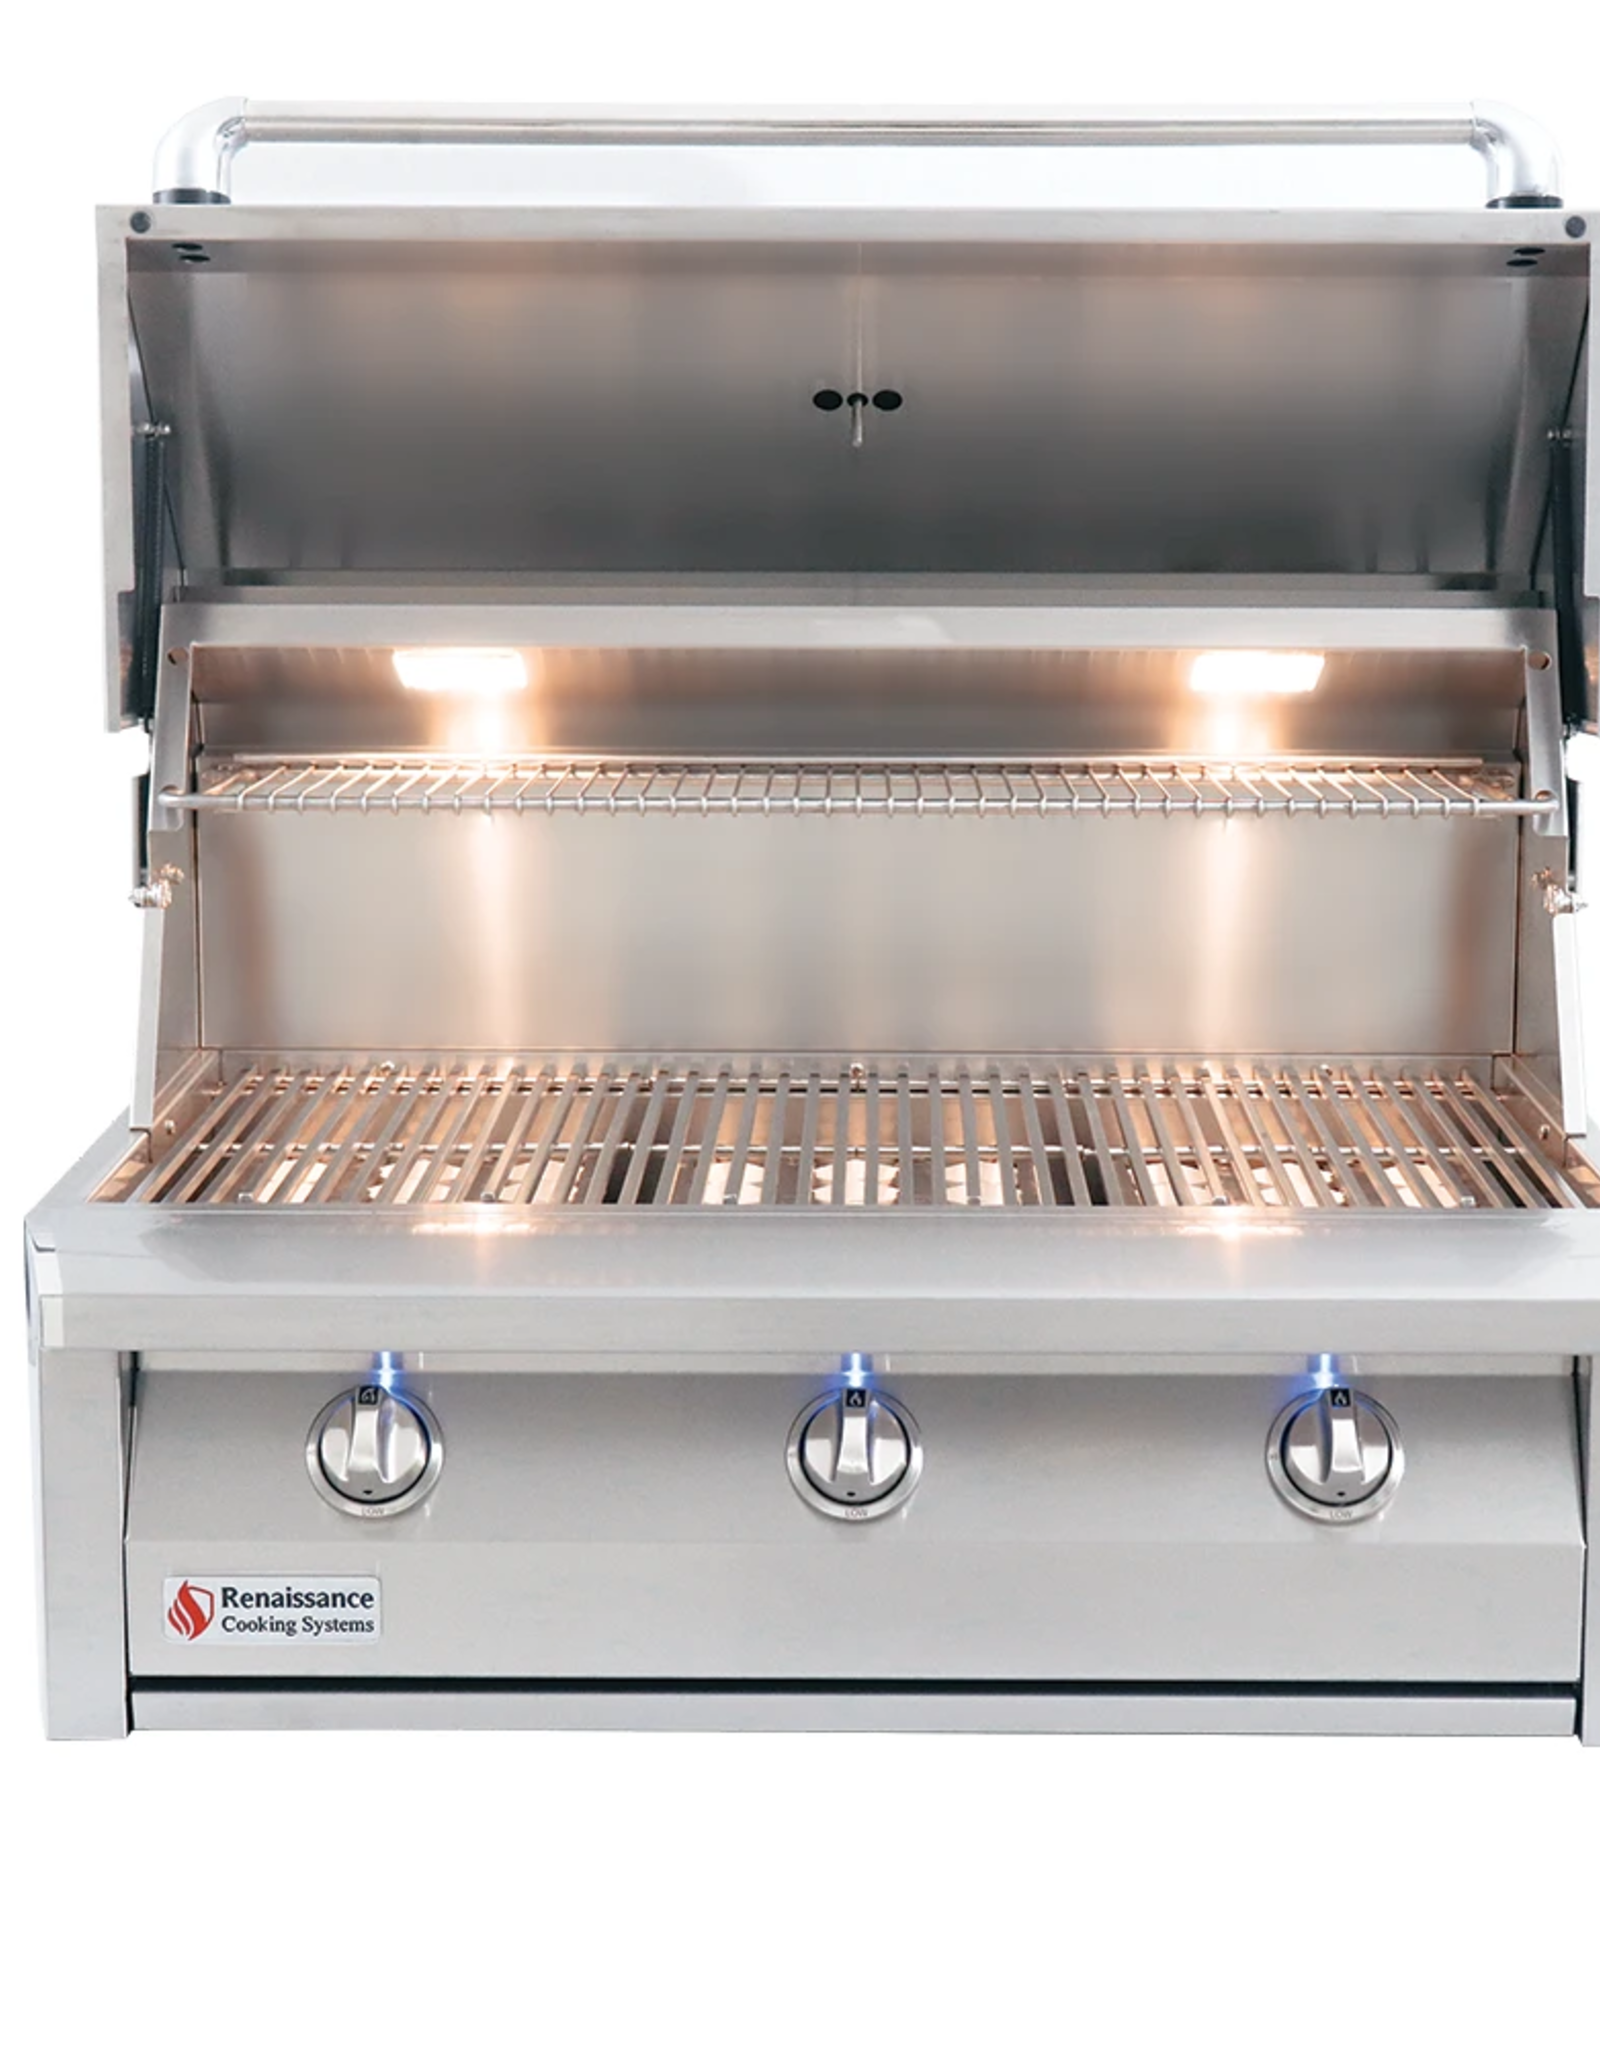 """Renaissance Cooking Systems Renaissance Cooking Systems  ARG 36"""" Drop-In Gas Grill - ARG36"""